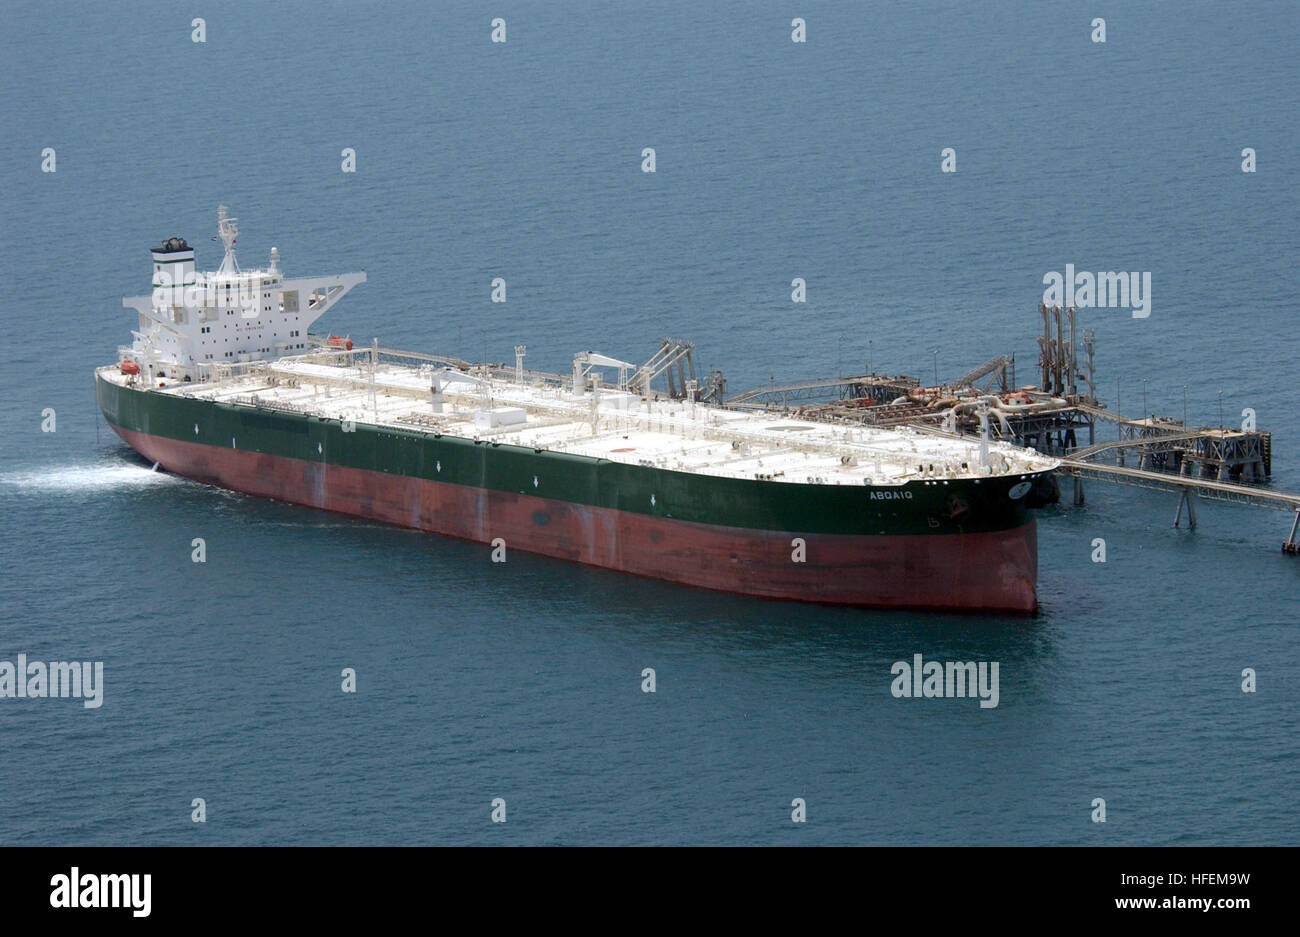 030629-N-4790M-003 Central Command Area of Responsibility (Jun. 29, 2003) -- Commercial oil tanker AbQaiq readies - Stock Image